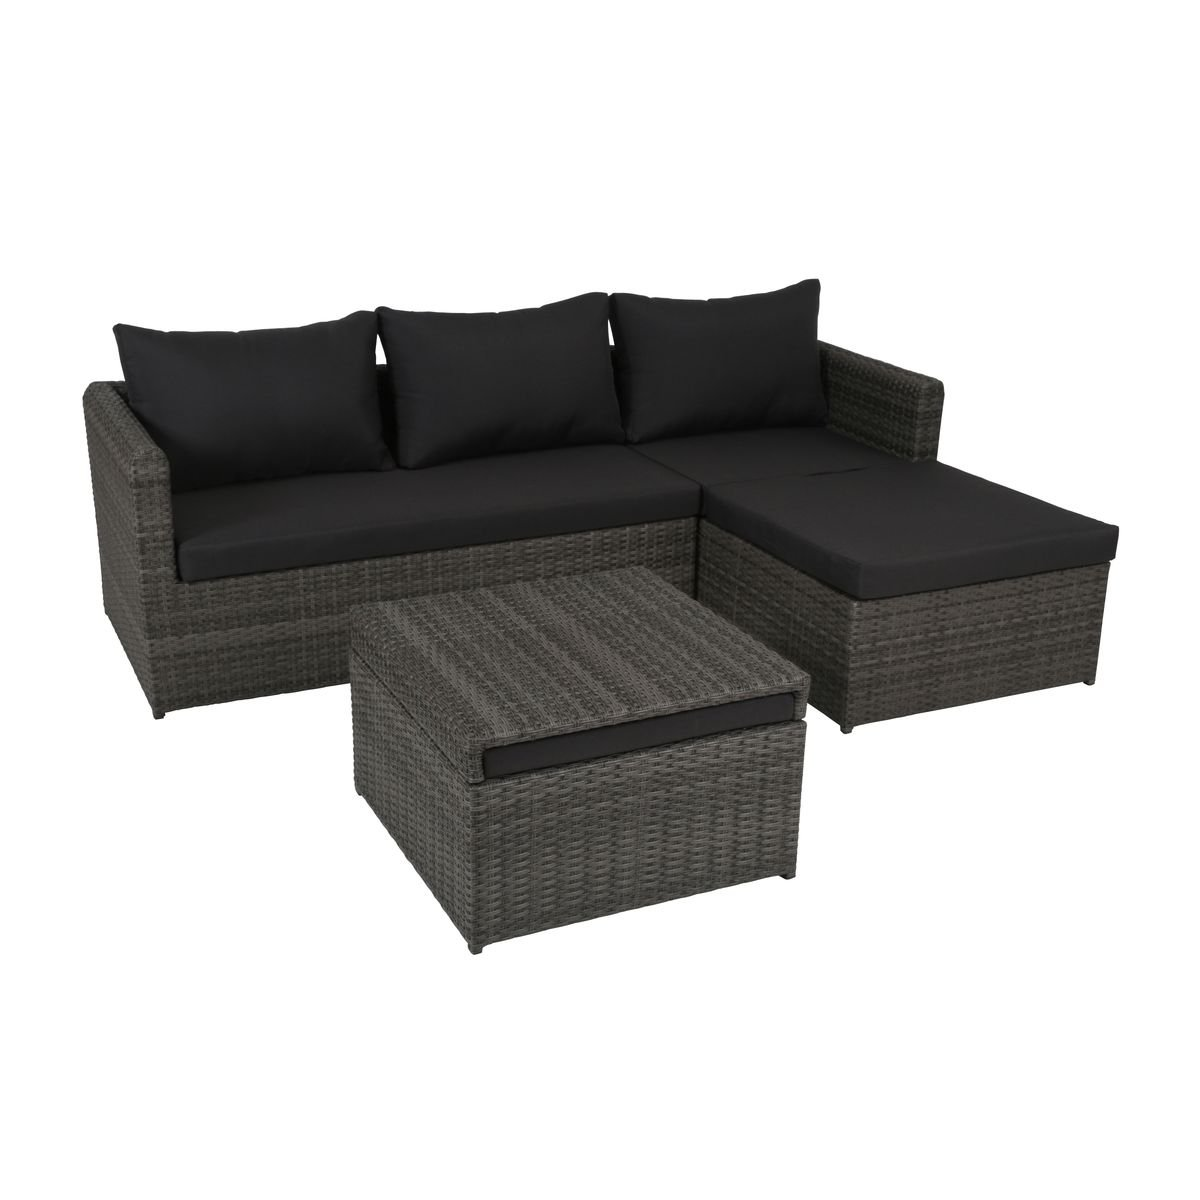 Rattan sofa outdoor  greemotion Rattan-Lounge Ibiza - Gartenmöbel-Set 3-teilig aus ...